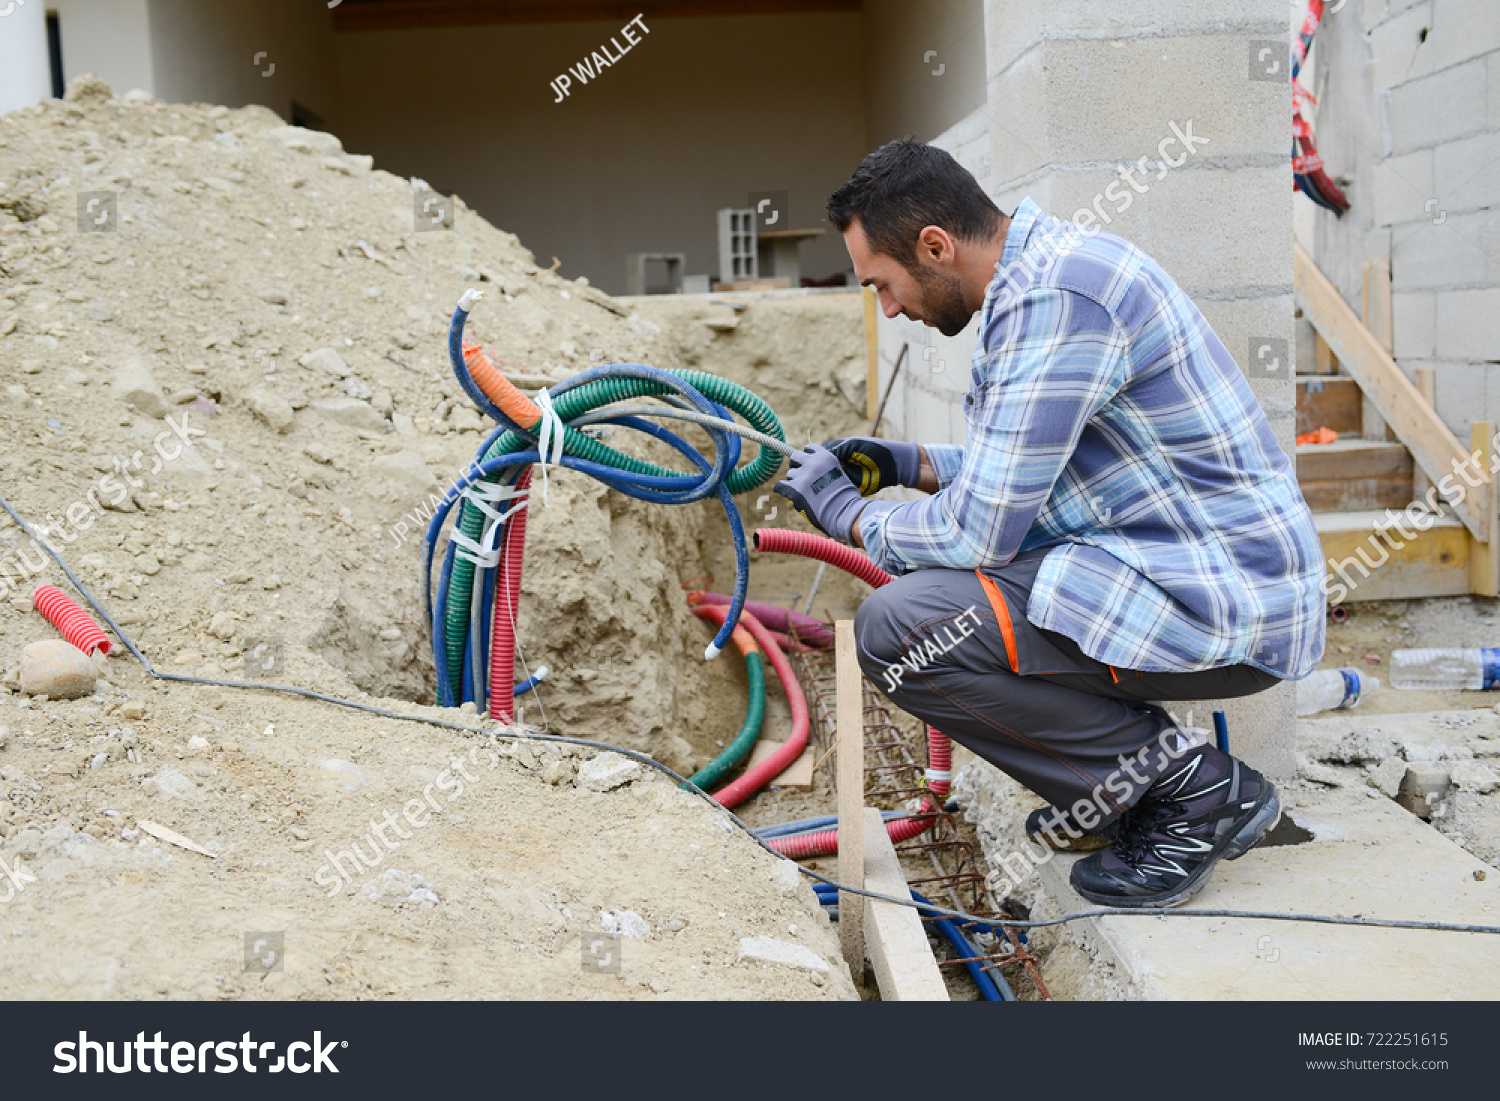 hight resolution of handsome young man electrician wiring cable outdoor in a house building construction site